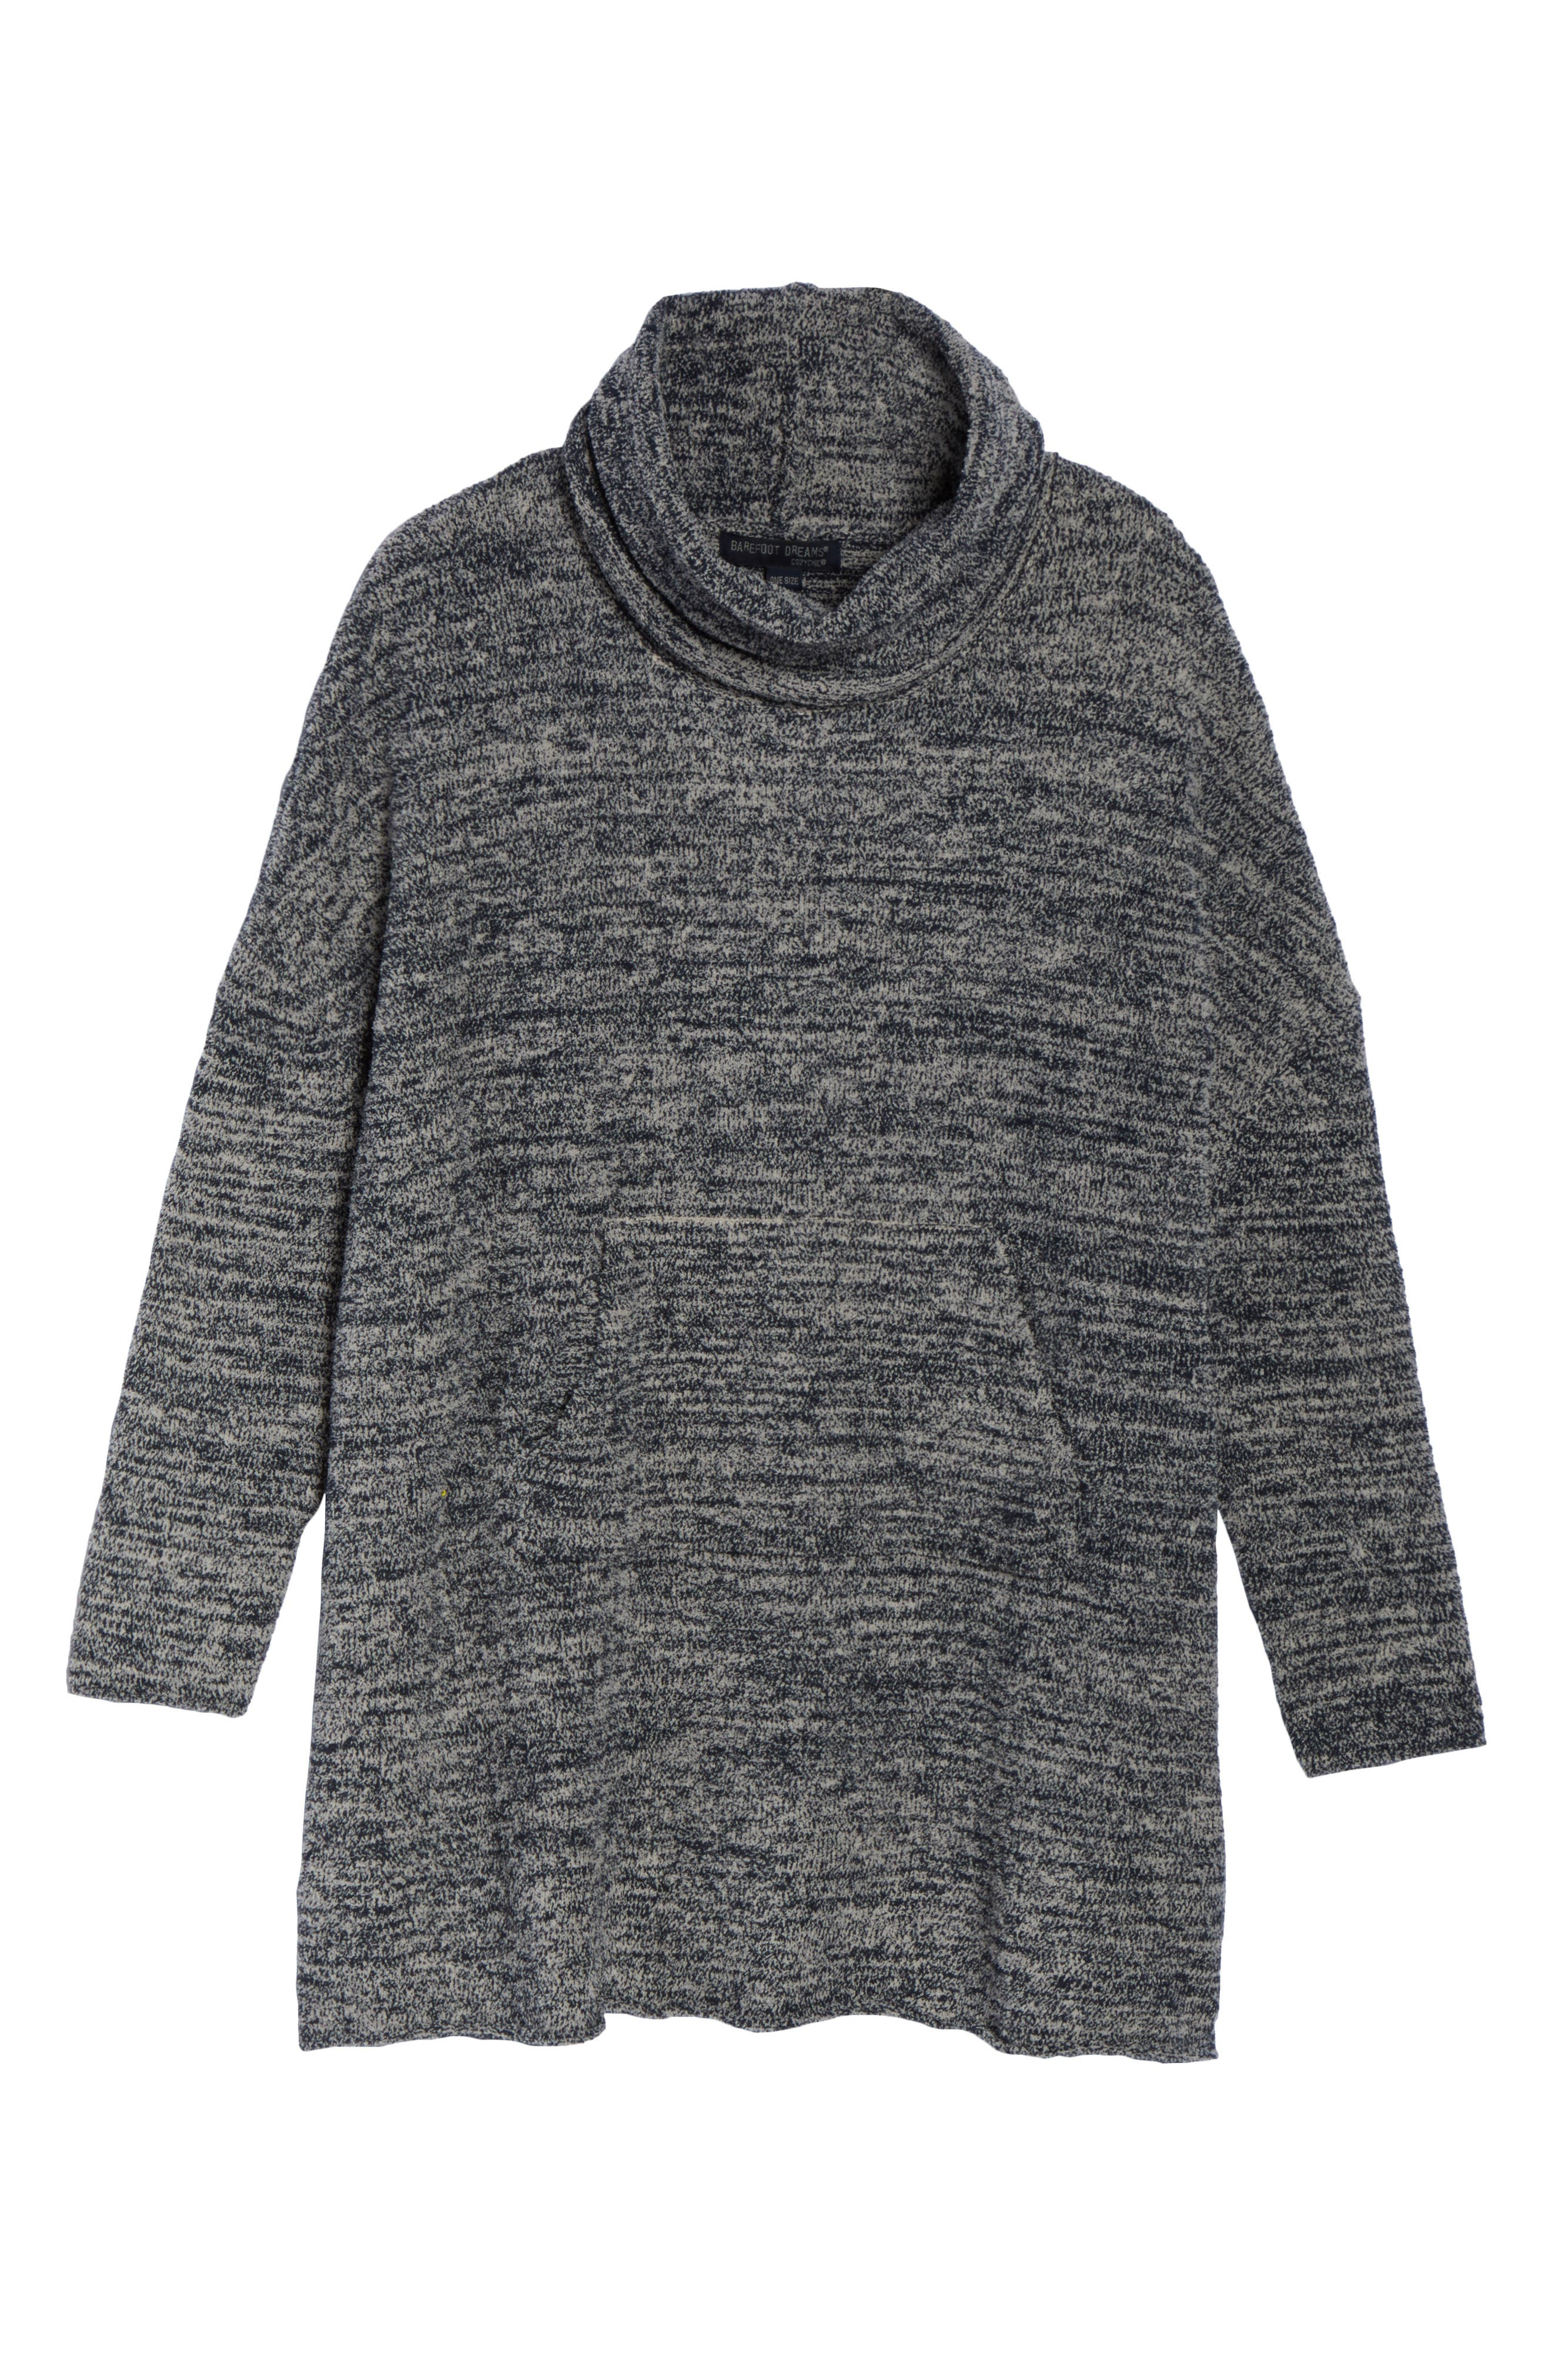 BAREFOOT DREAMS<SUP>®</SUP>, Cozychic<sup>®</sup> Lounge Pullover, Alternate thumbnail 6, color, INDIGO/ STONE HEATHERED